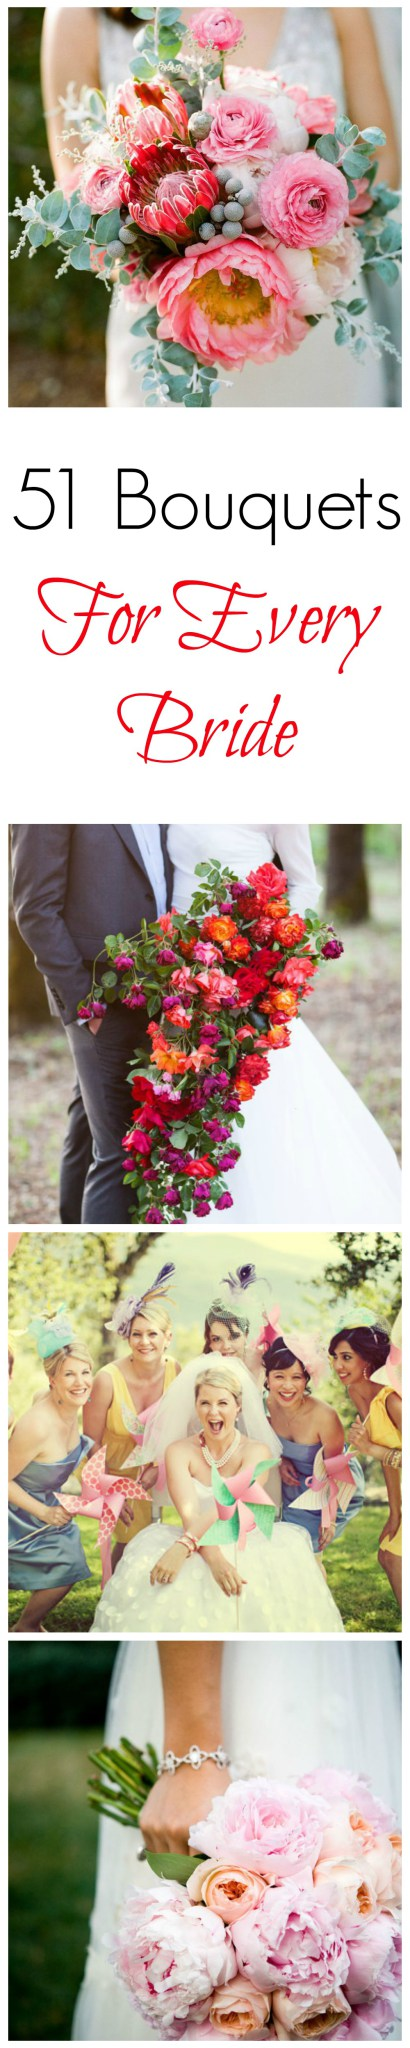 51 Bouquets For Every Bride I Classic And Timeless Bohemian